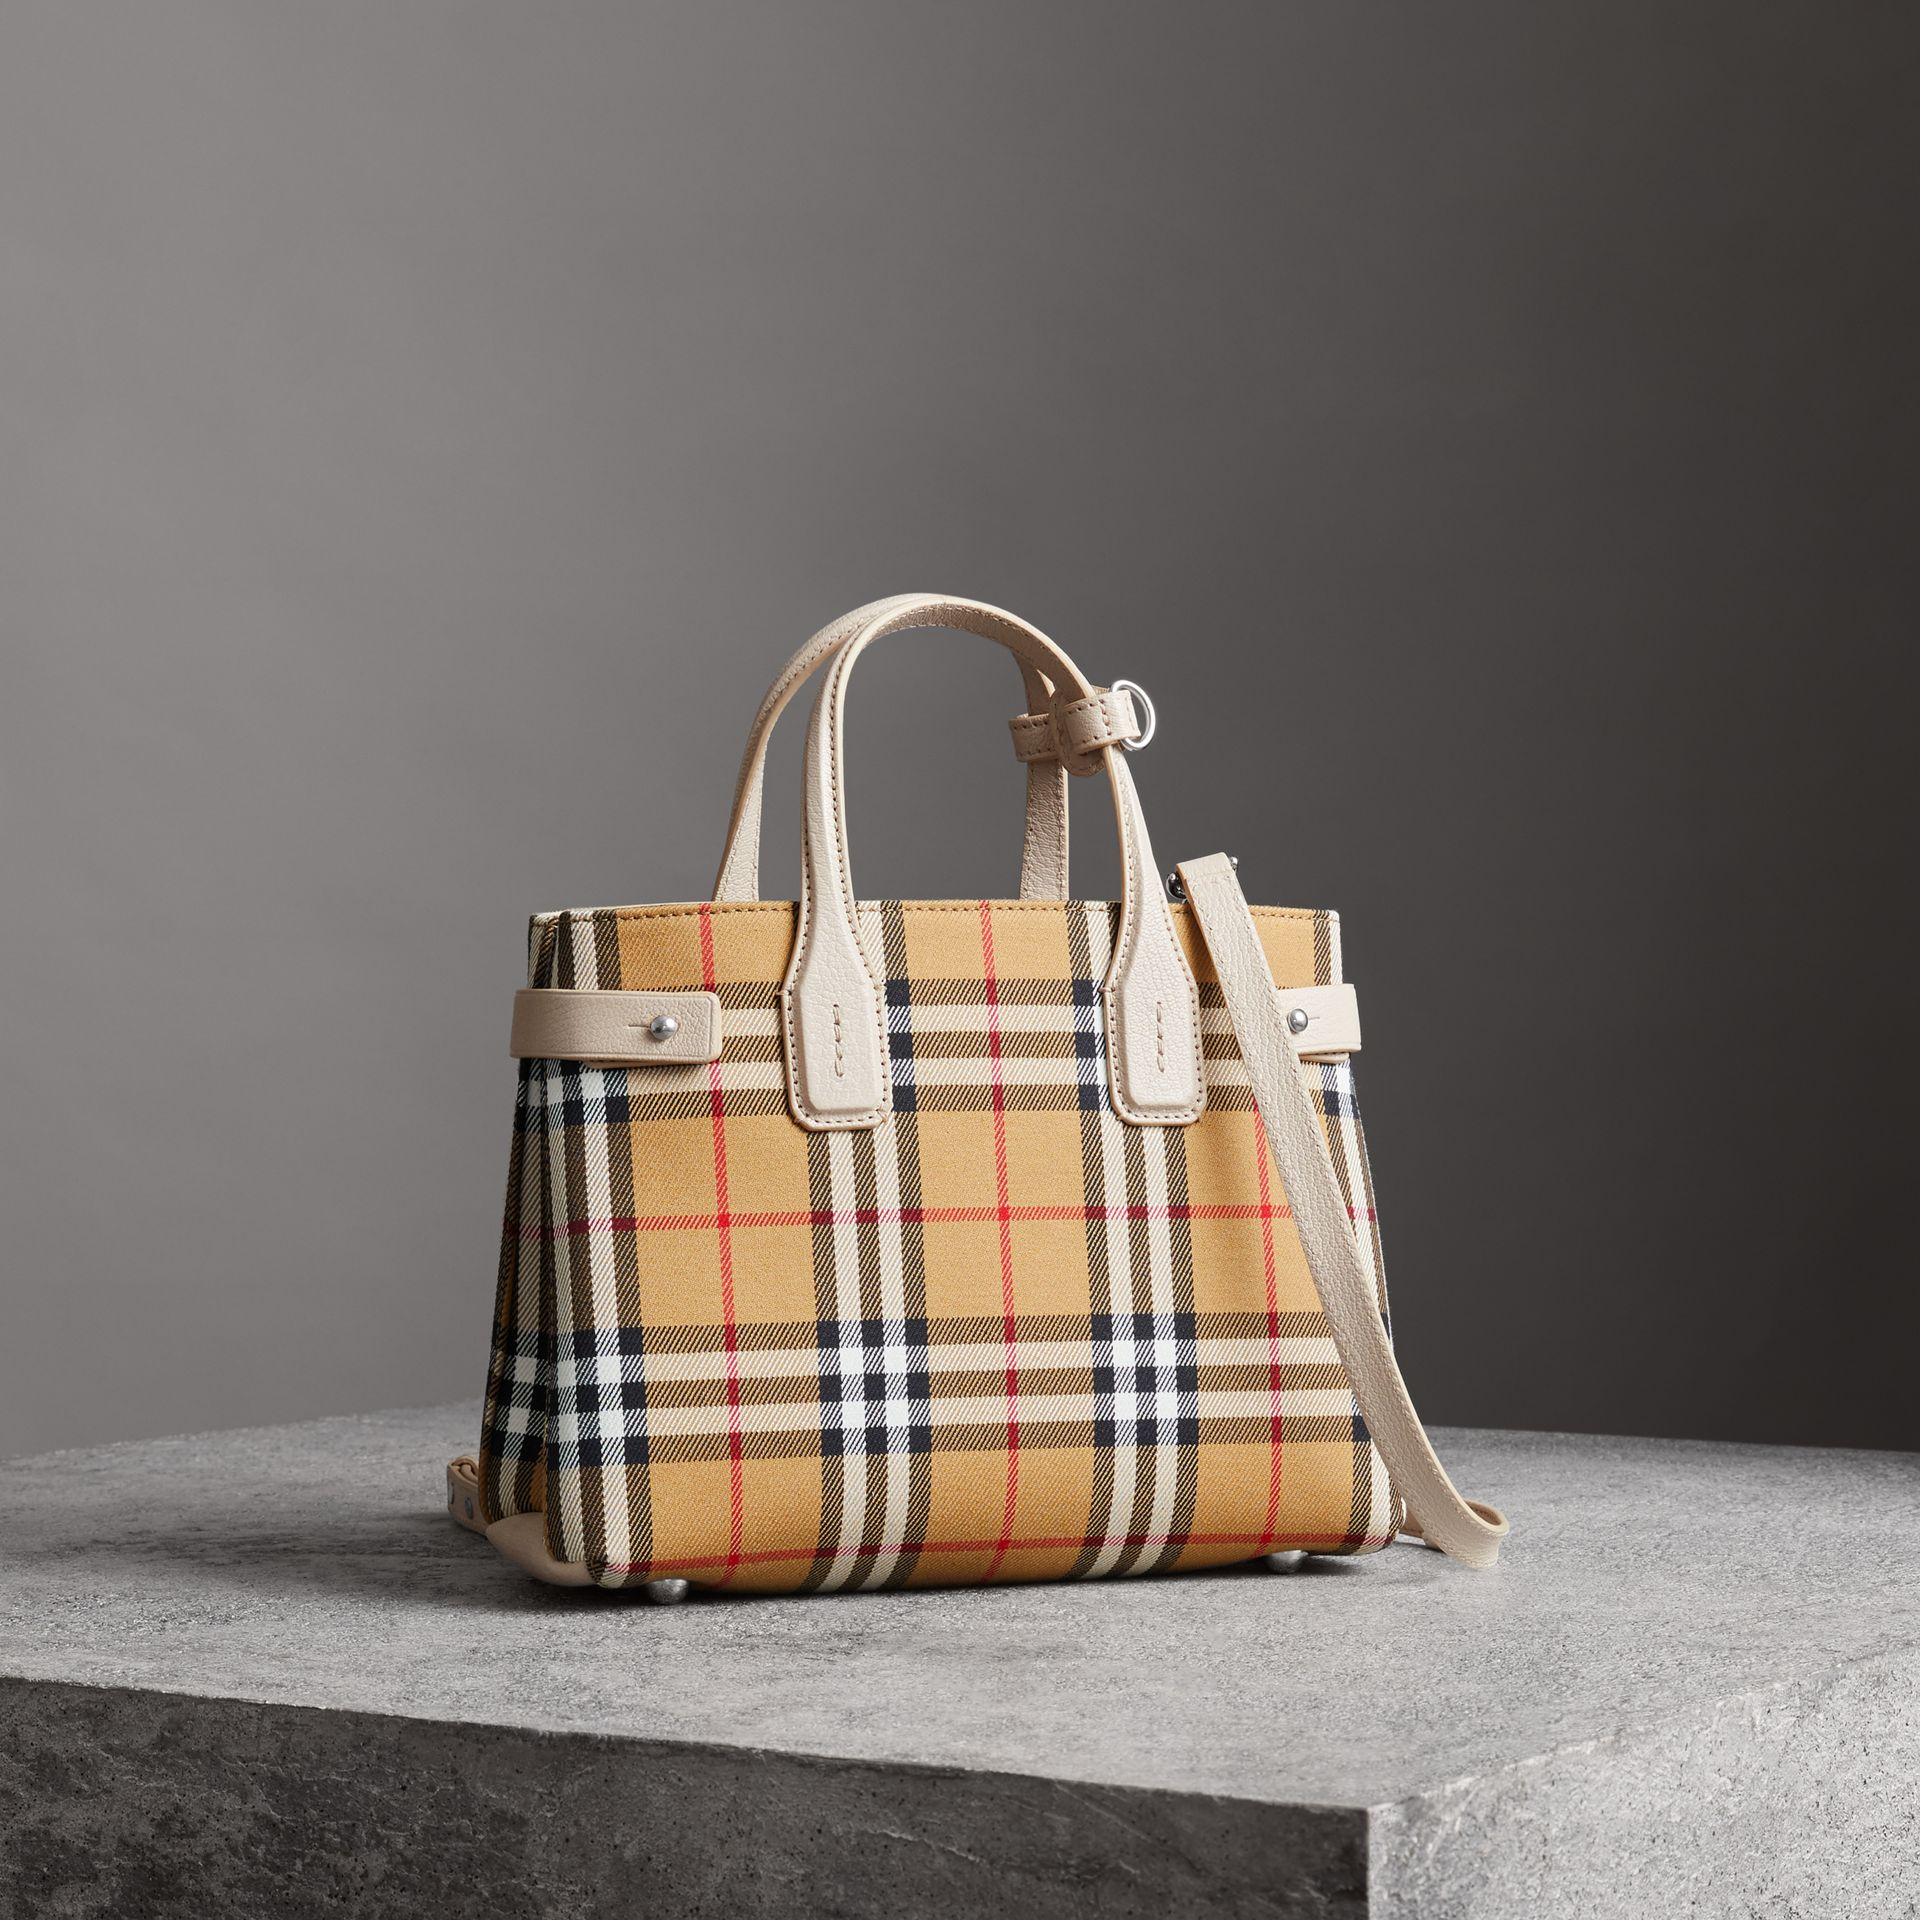 ... fashion house Burberry remains at the forefront of luxury design.  Instantly recognisable by its iconic vintage house check 0a4c72f9007e8